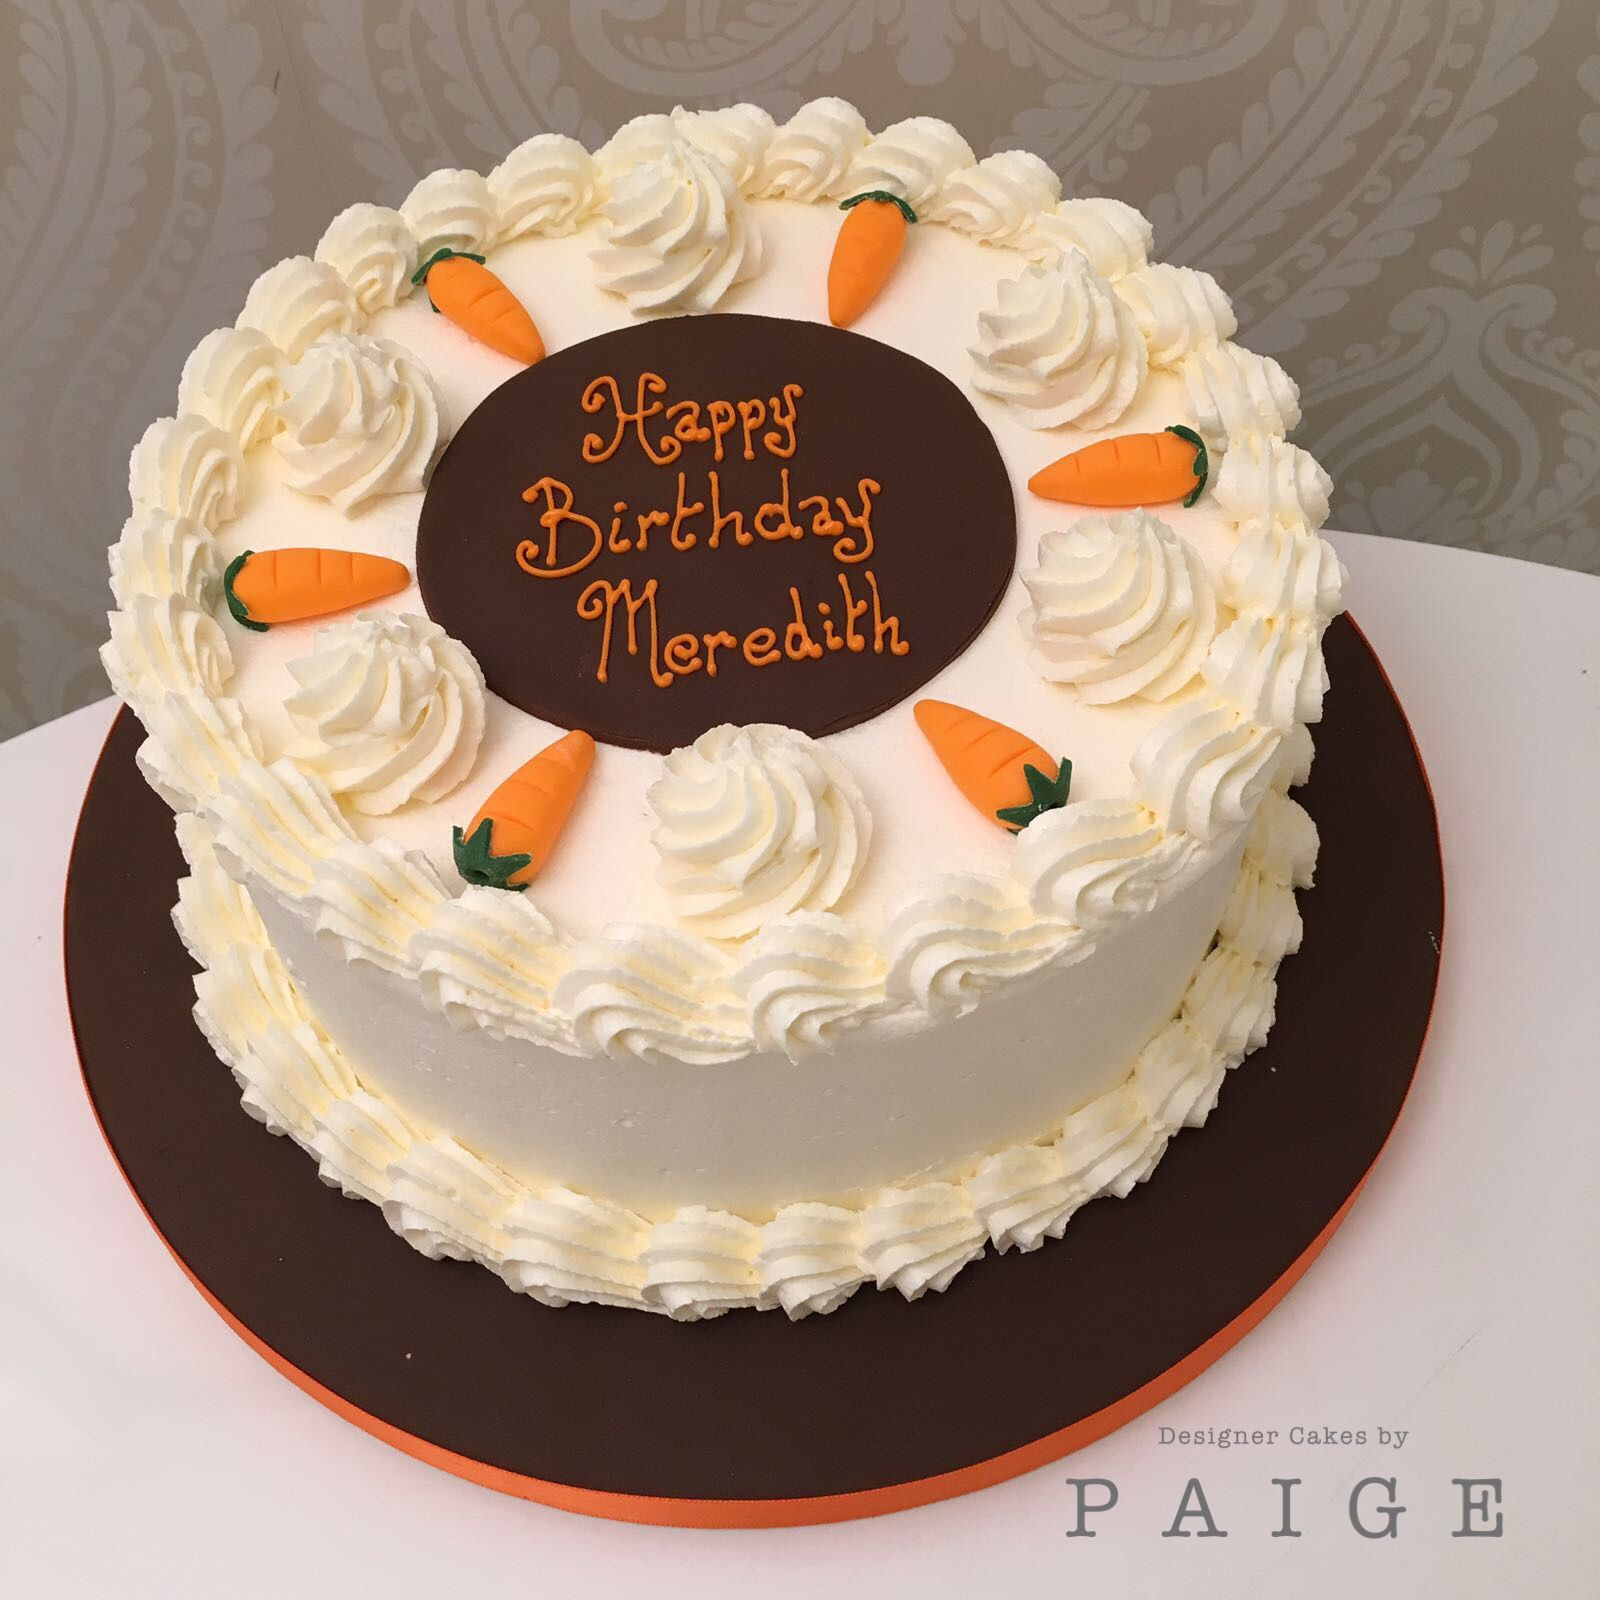 Pin By Esther Corona On Cakes With Images Cake Buttercream